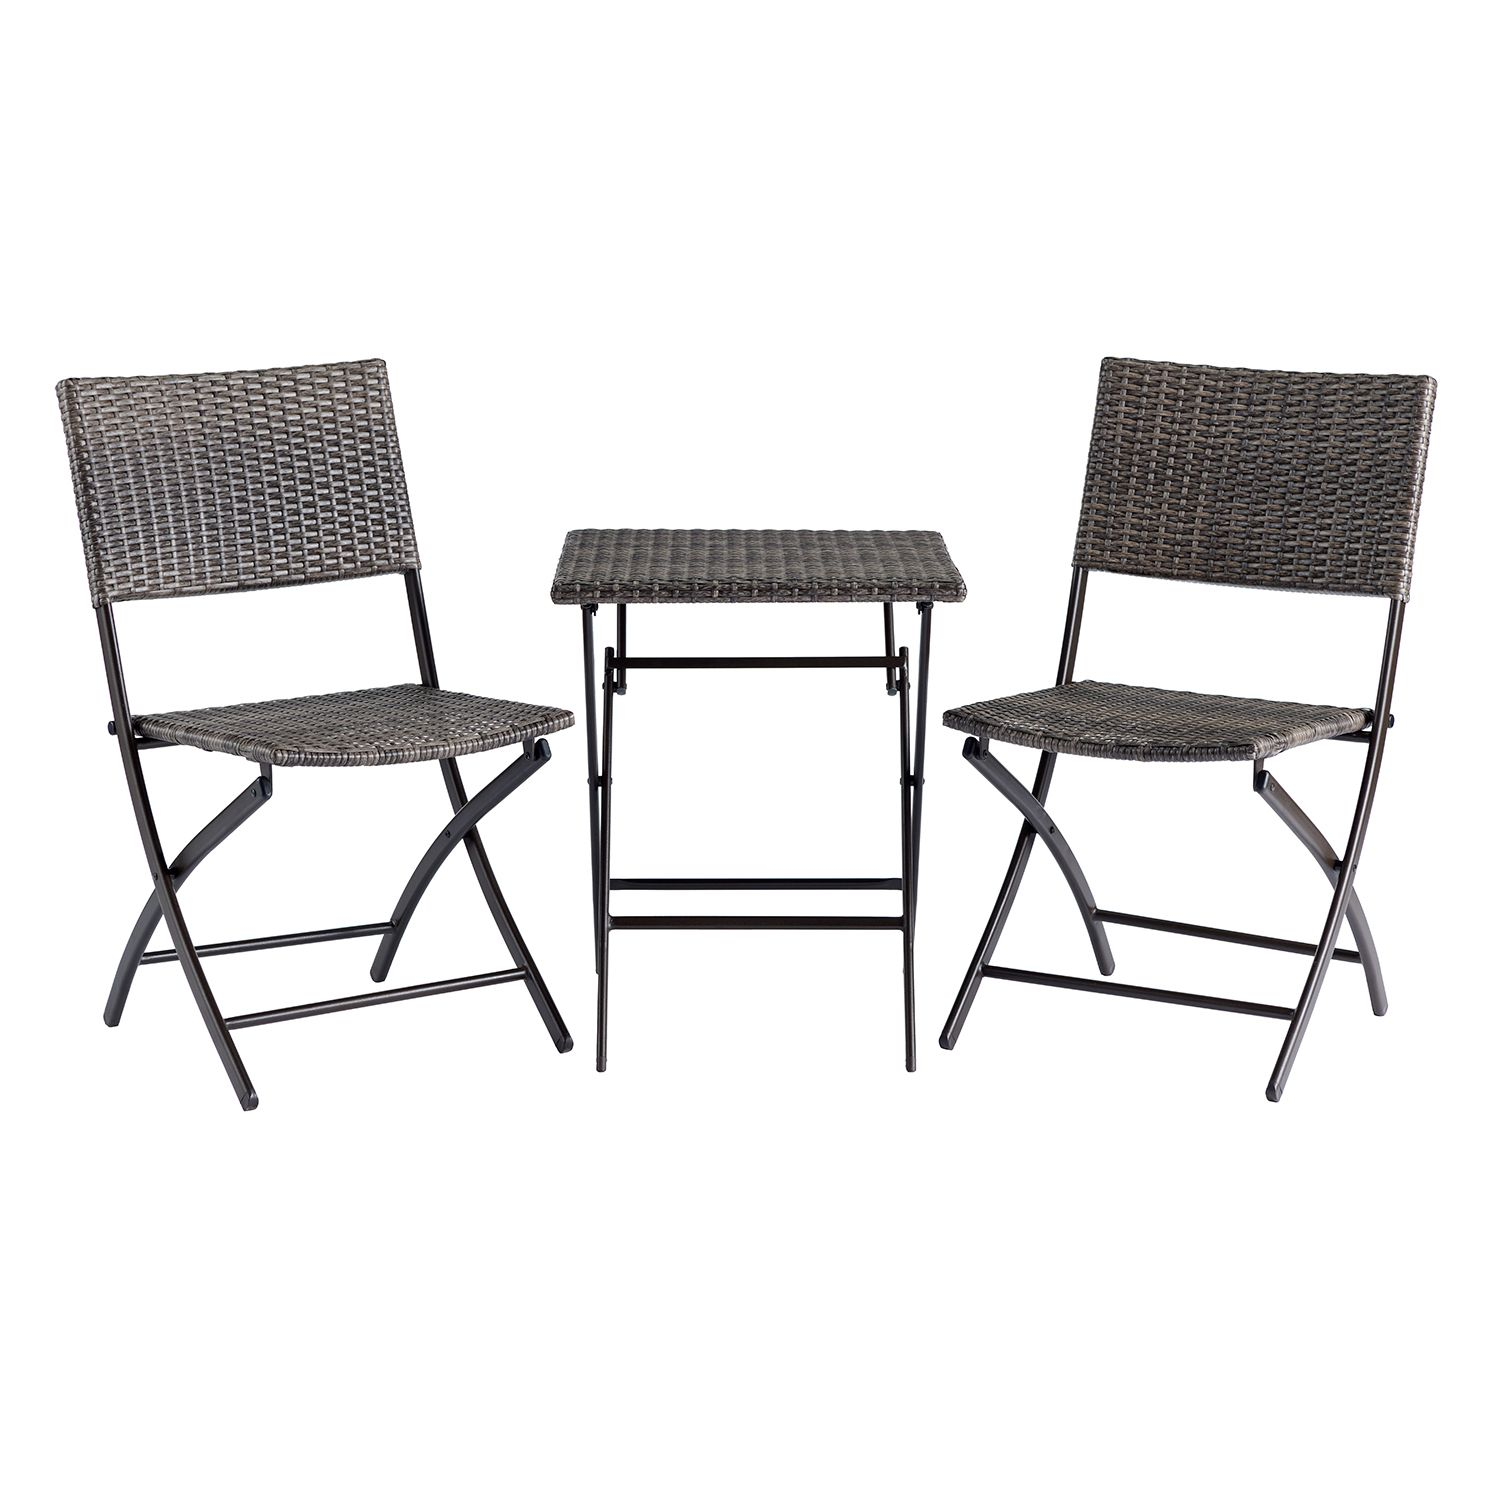 SONOMA Goods For Life™ Folding Bistro Table U0026 Chairs 3 Piece Set